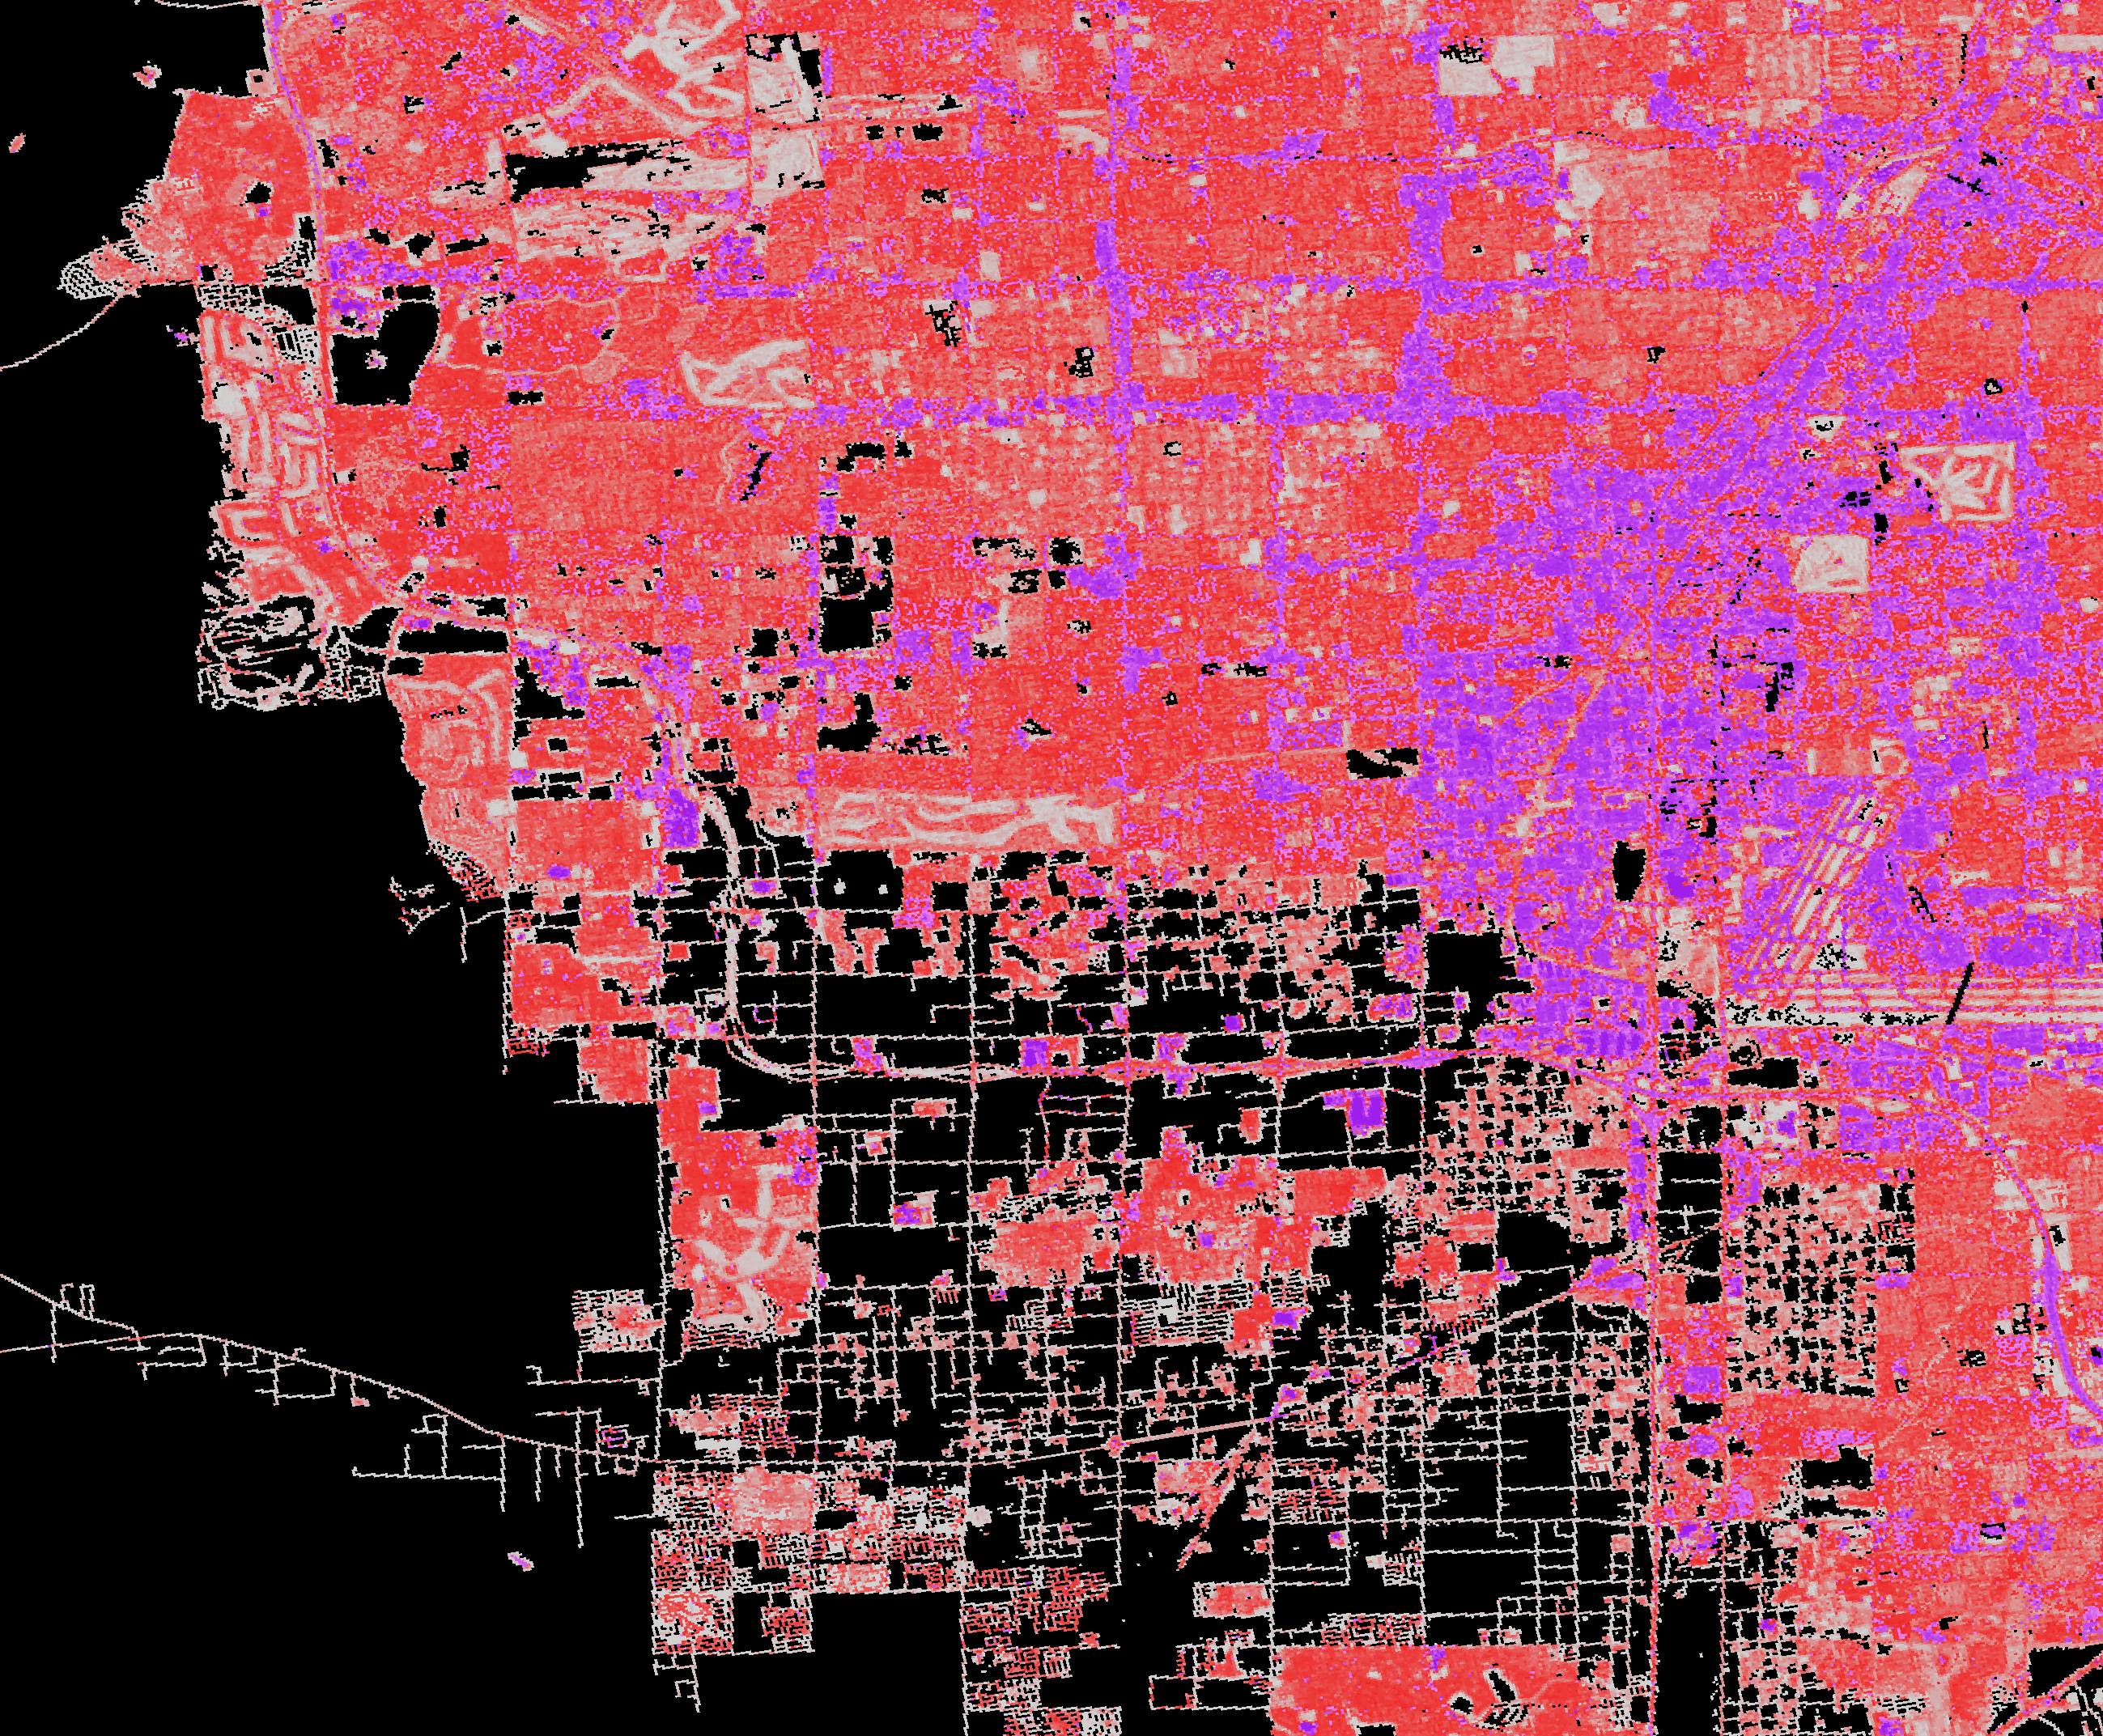 National Land Cover Database (NLCD) 2006, Impervious Surface, Las Vegas, Nevada,